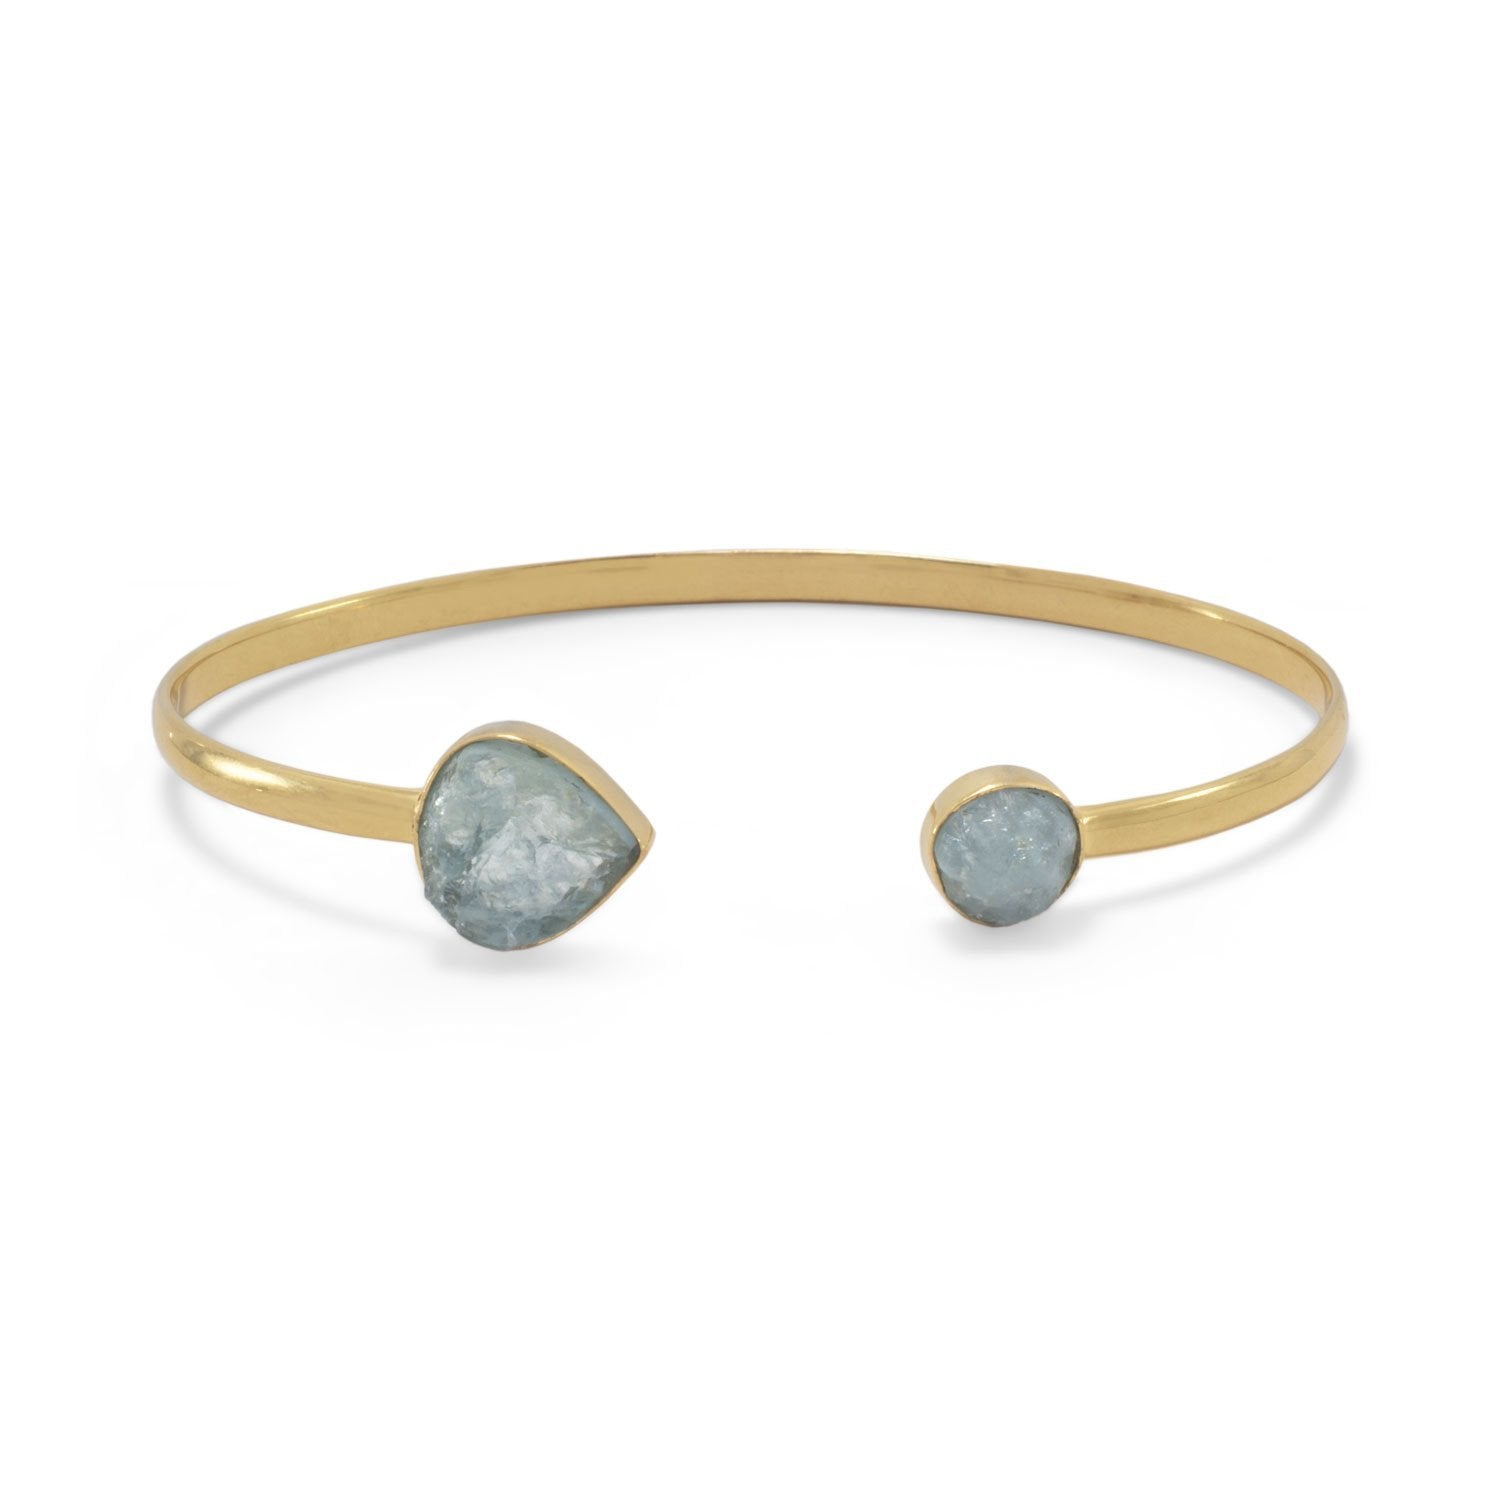 18k Gold Aquamarine Pear & Round Open Cuff Bangle